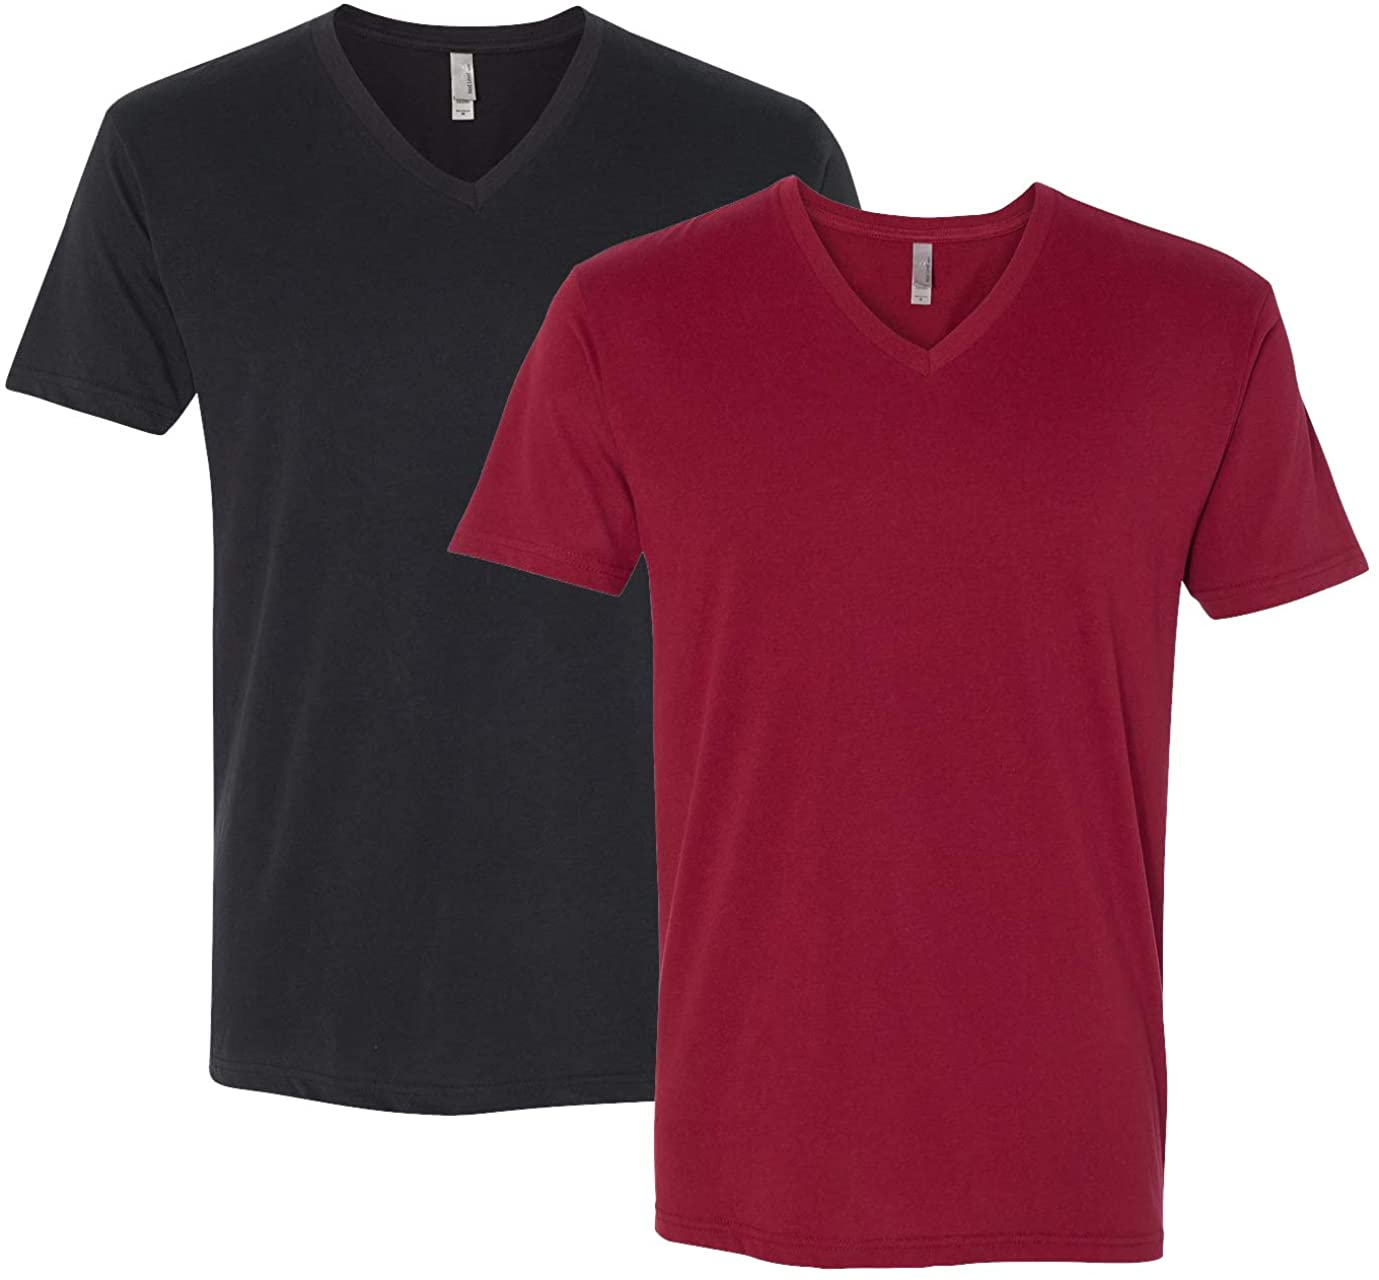 Next Level Apparel 6440 Mens Premium Fitted Suided V-Neck, Black + Cardinal (2 Shirts)-X-Large